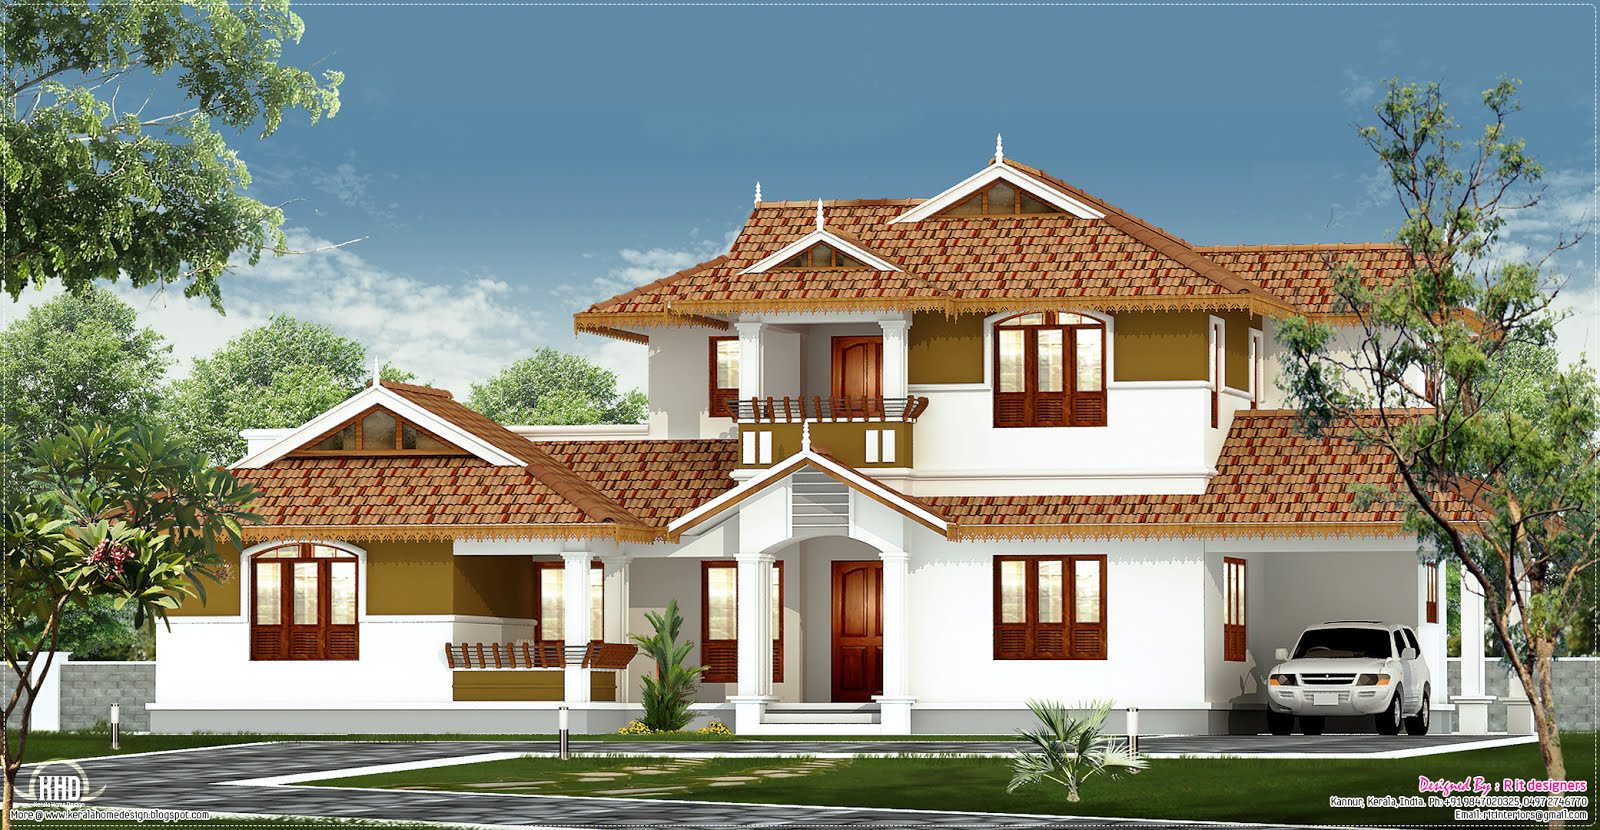 Kerala house plans below 1000 square feet joy studio for Kerala house plans 1000 square feet